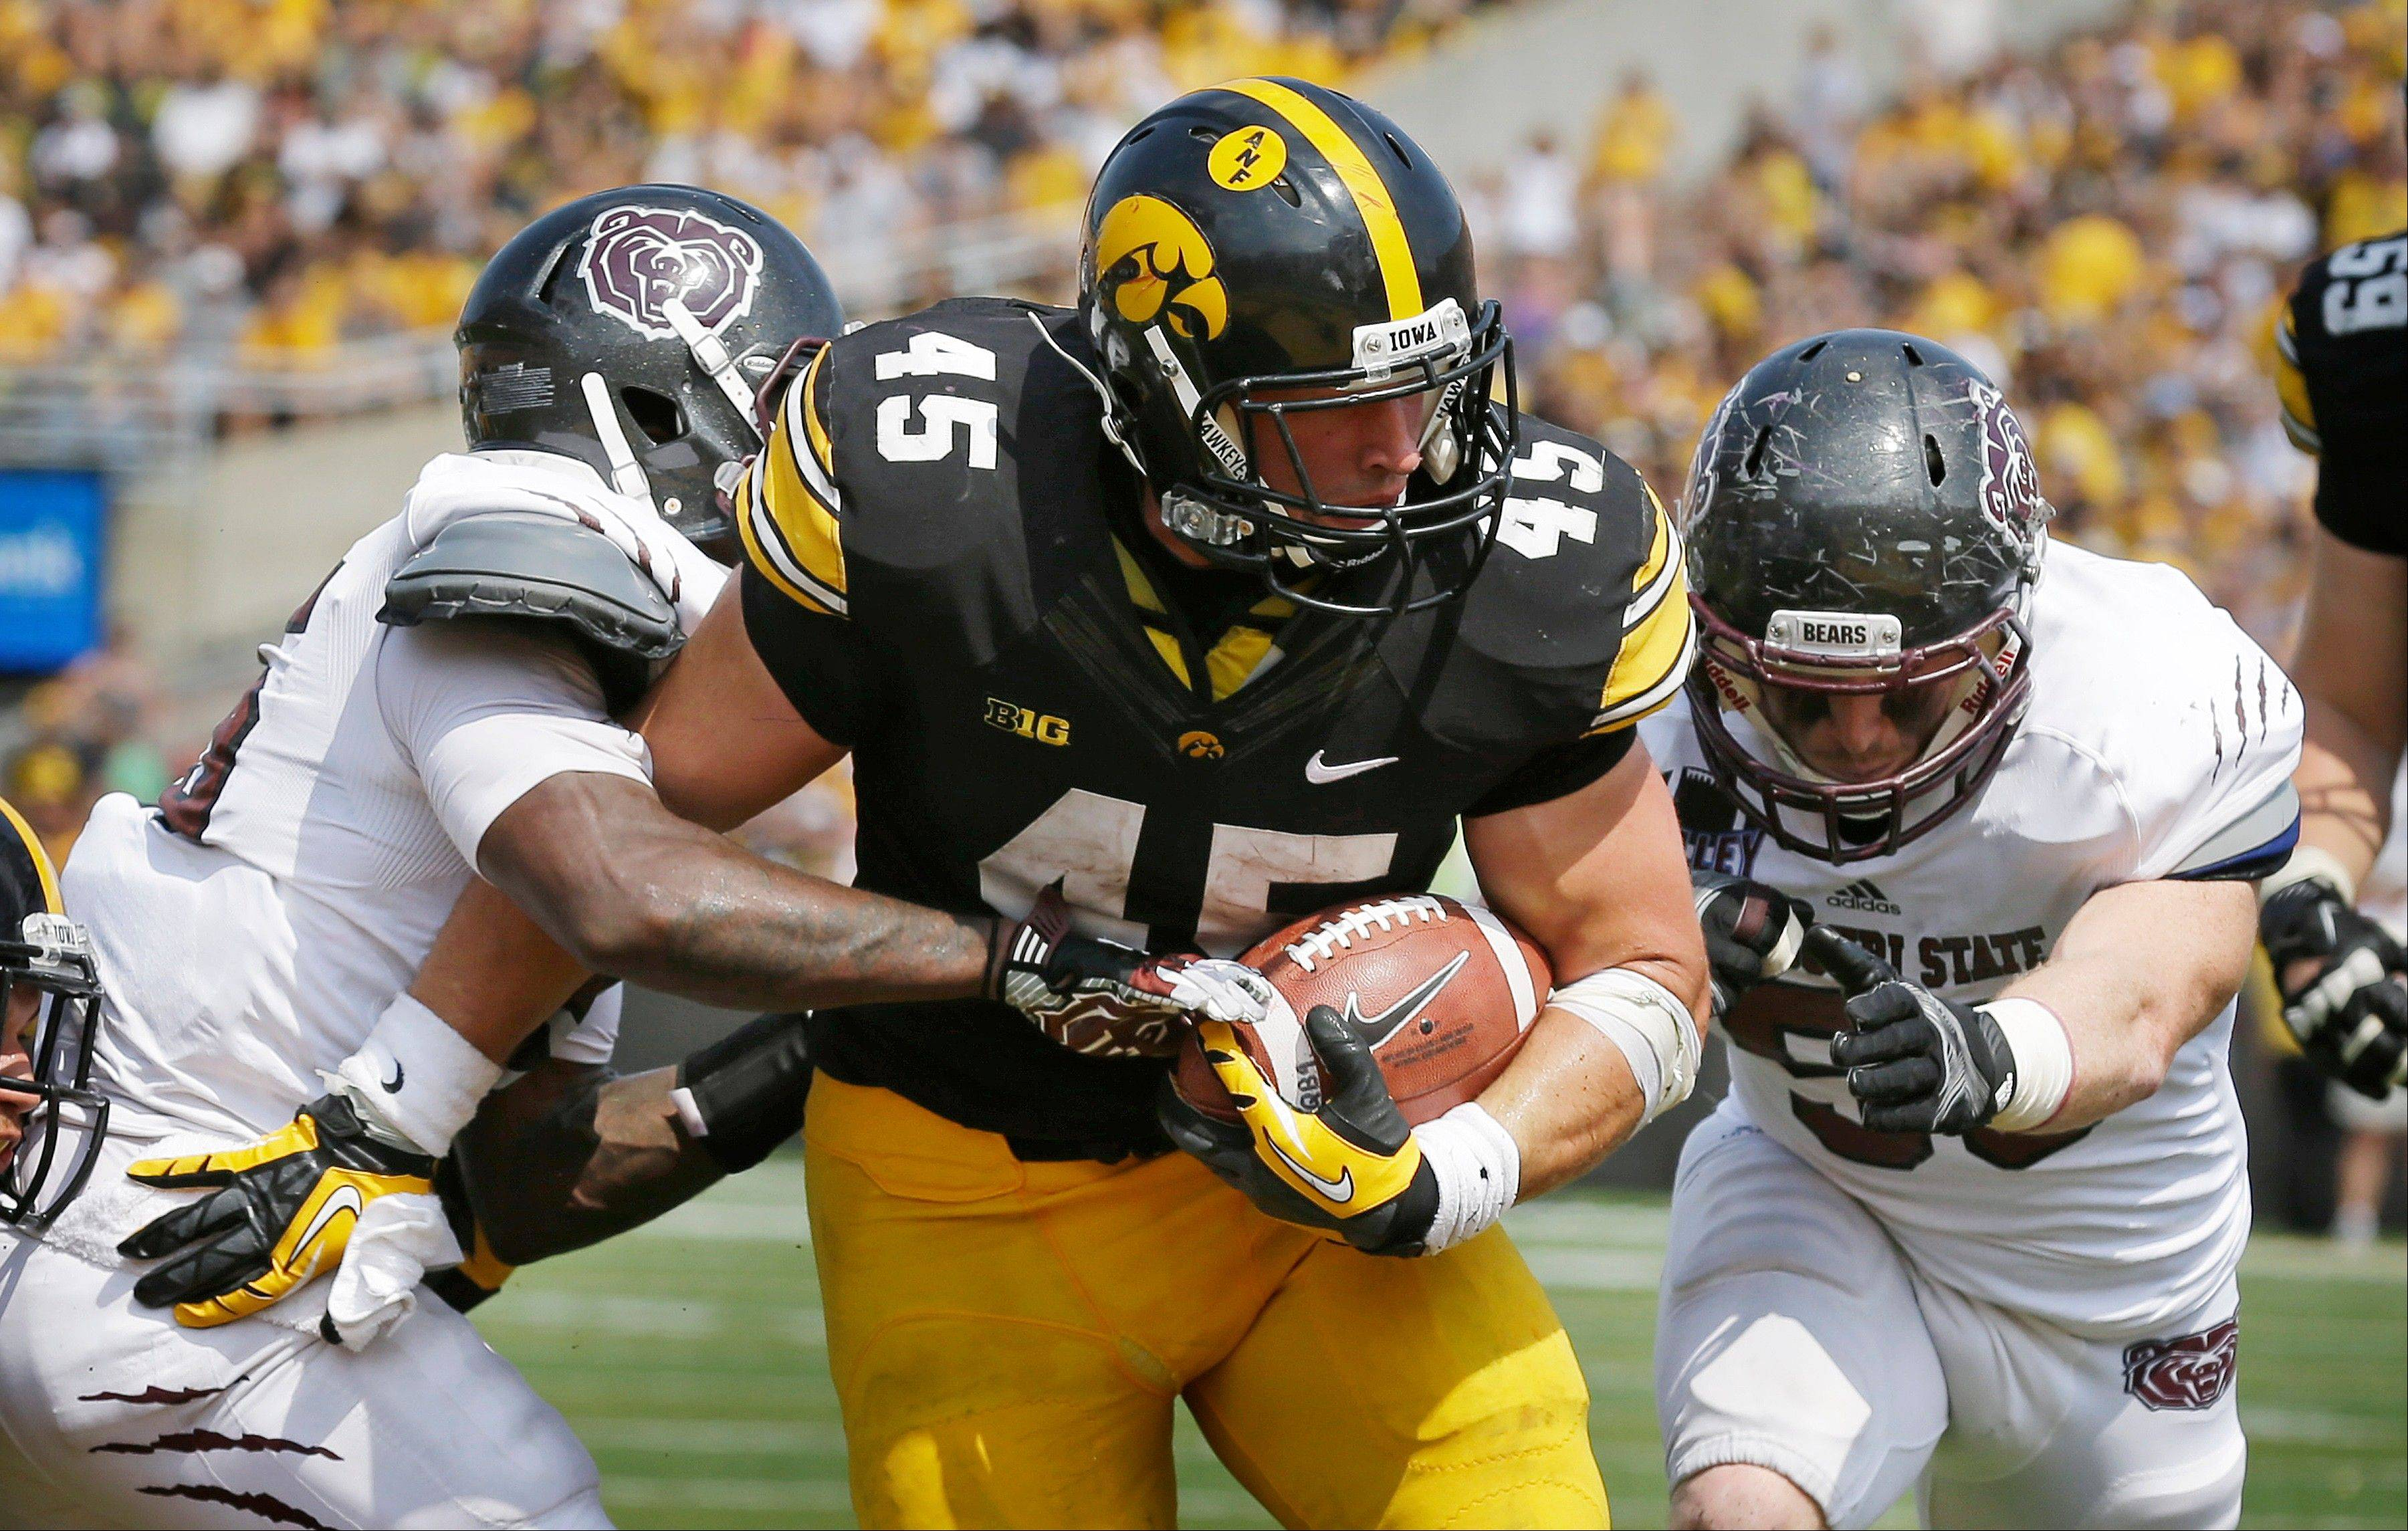 Iowa fullback Mark Weisman, center, scores on a 10-yard run between Missouri State's Sybhrian Berry, left, and Andrew Beisel during the second half of Saturday's game in Iowa City, Iowa.